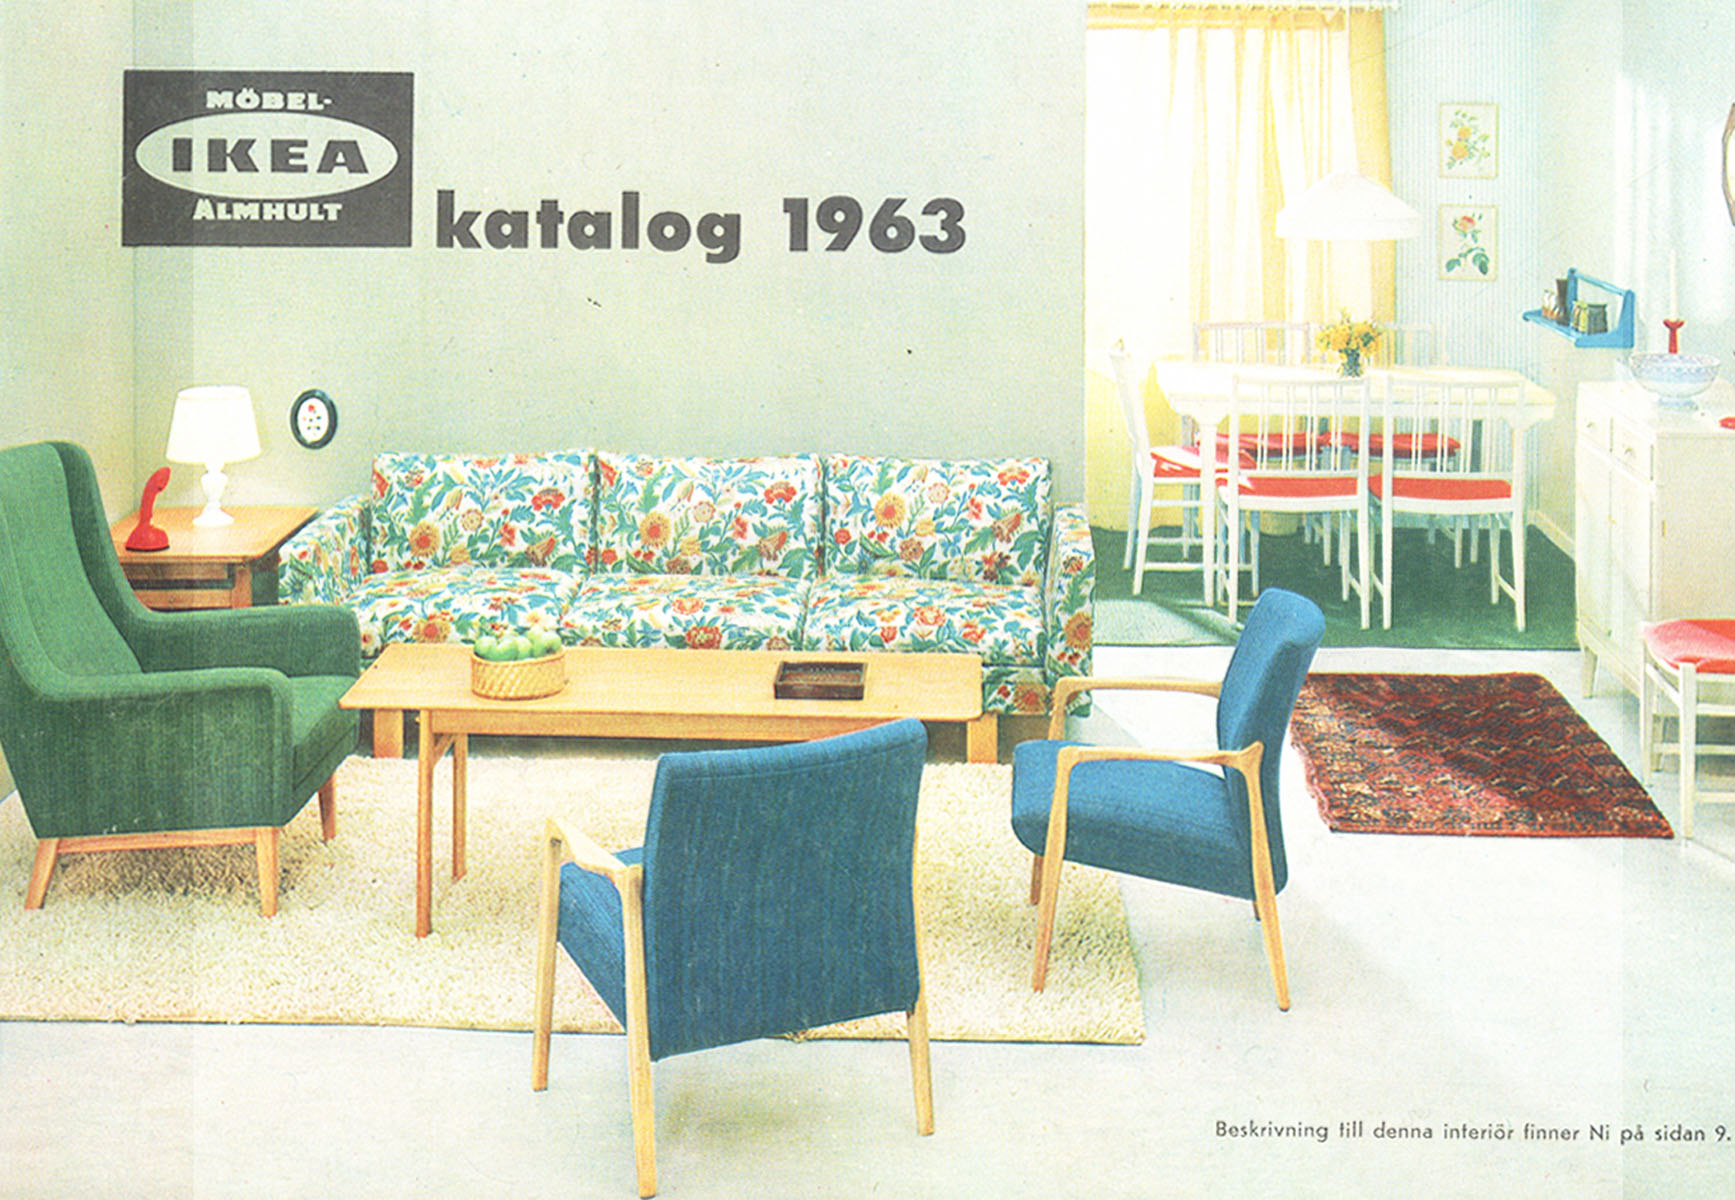 Ikea 1963 catalog interior design ideas for Home interior decorating catalogs